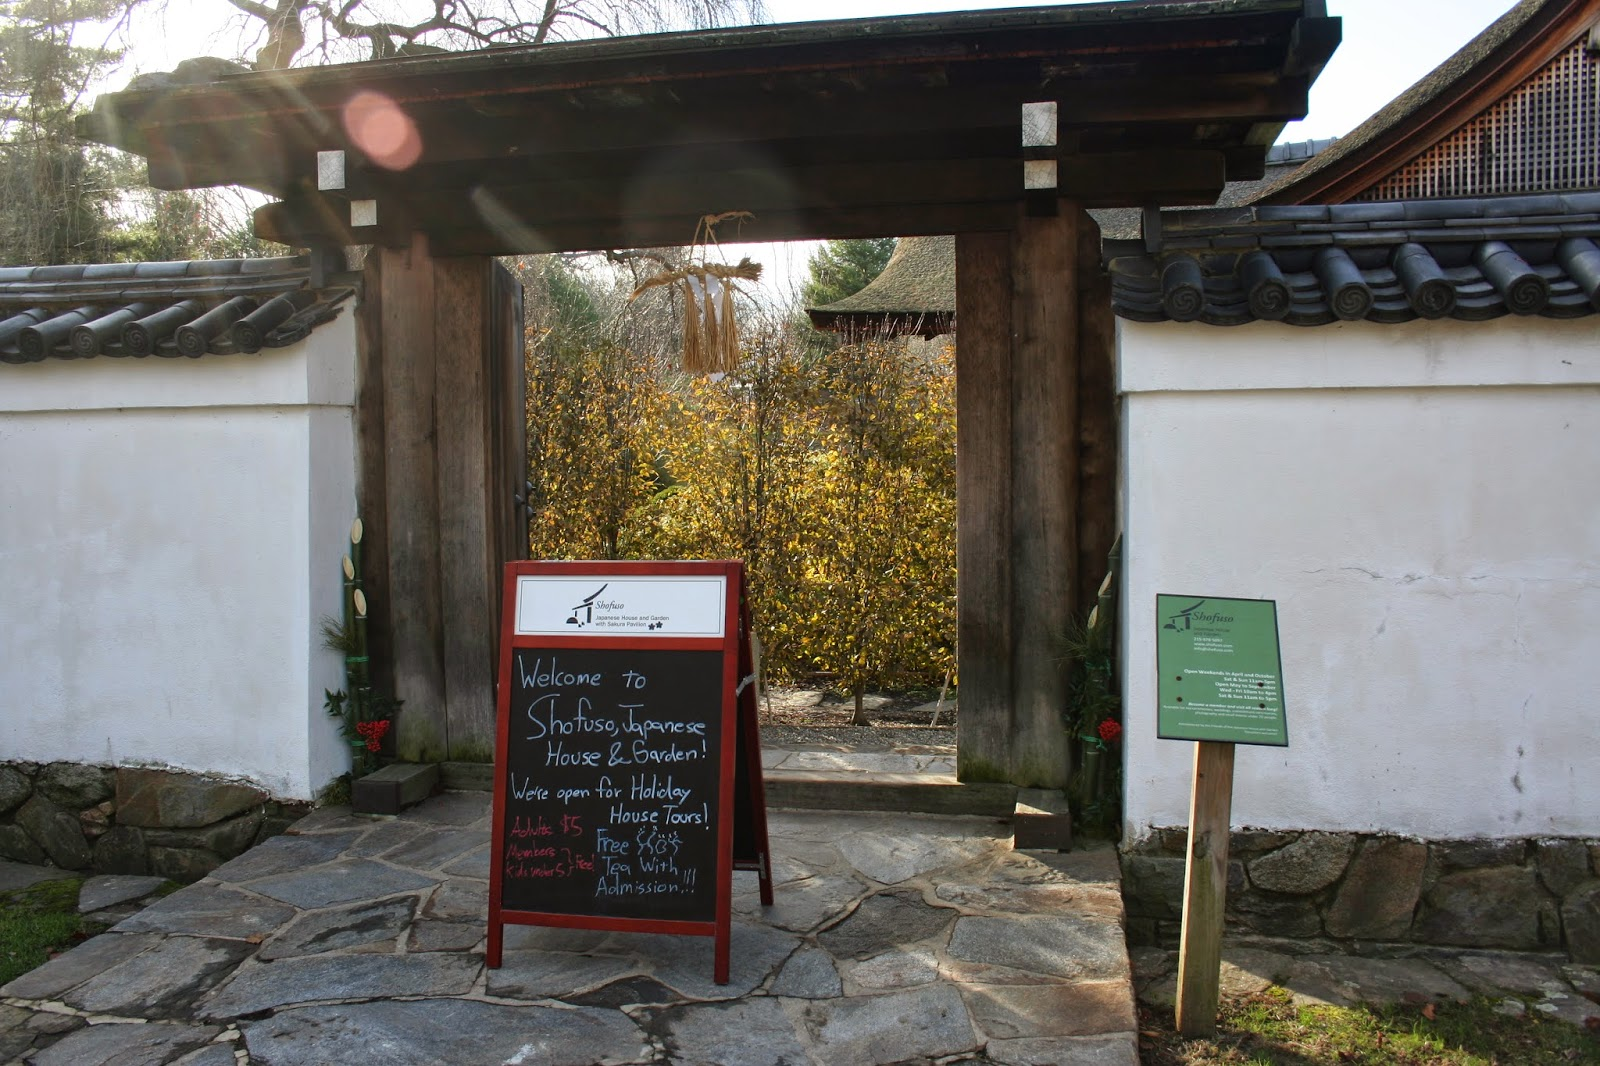 The Shimenawa Made Of Rice Straw Hangs Above The Entrance To The Sofuso  Japanese House And Garden It Indicates You Are Entering A Sacred Area.